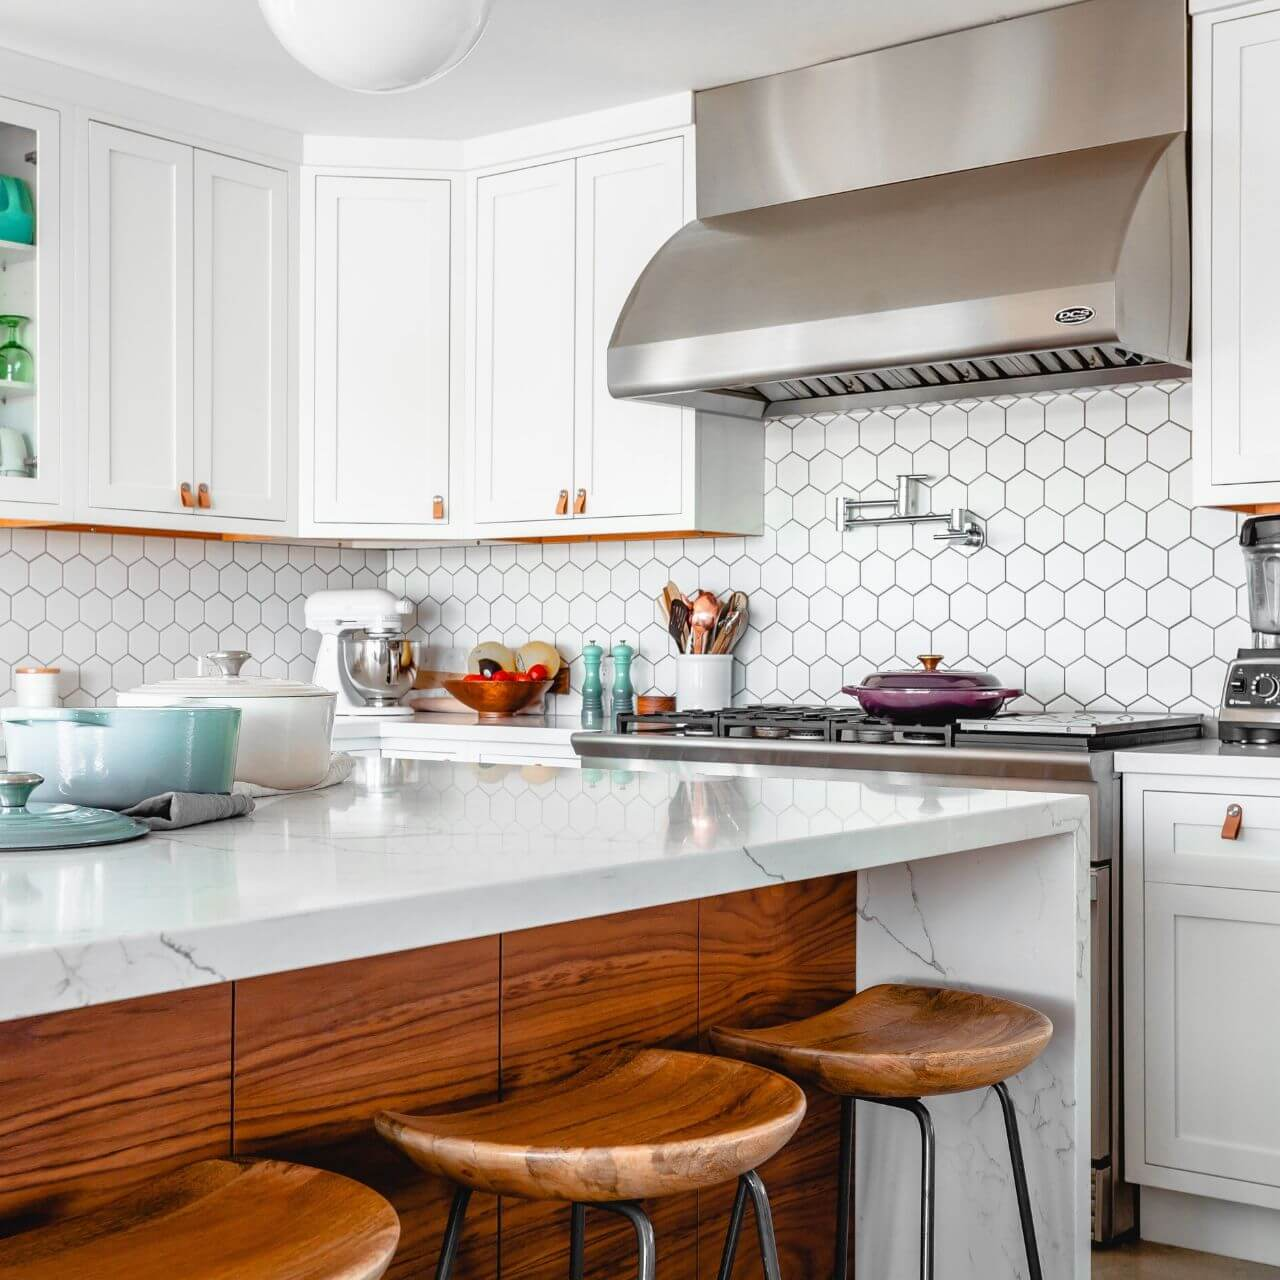 Bright modern kitchen with white tiles